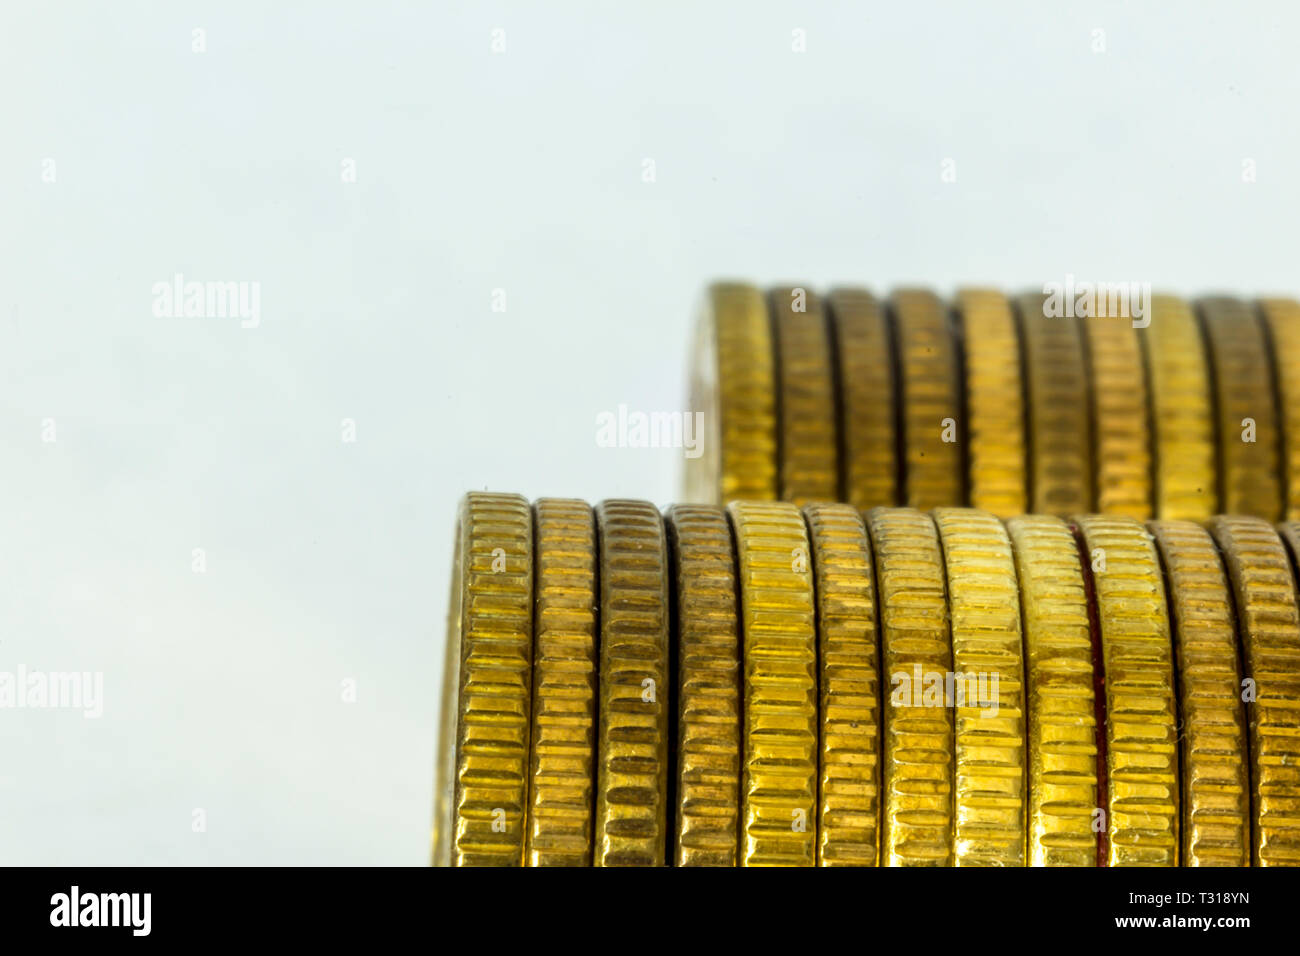 Makrofoto two stacks of coins. Stacks lying on their sides. Side view  . A good image for a site about finance, money, collection, relationships. - Stock Image